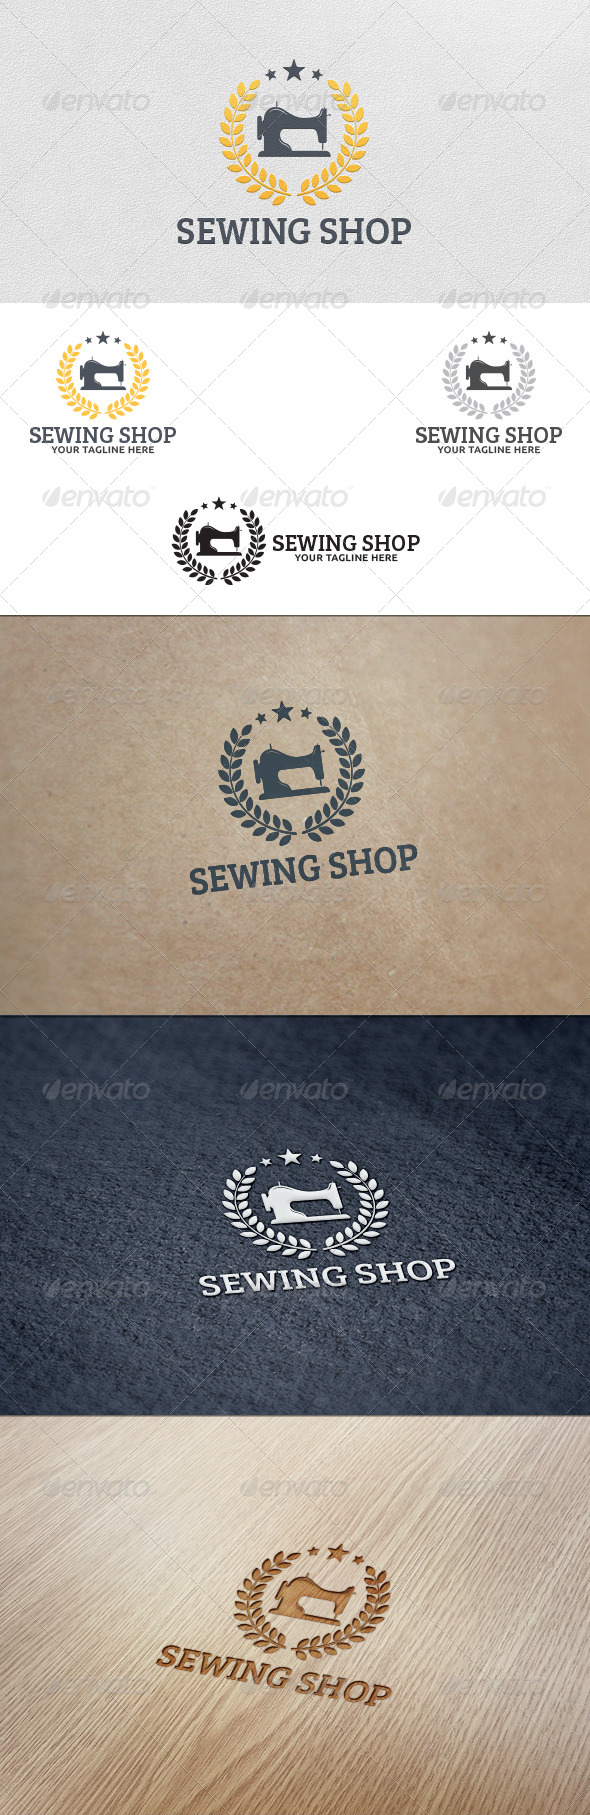 GraphicRiver Sewing Shop Logo Template 5627499